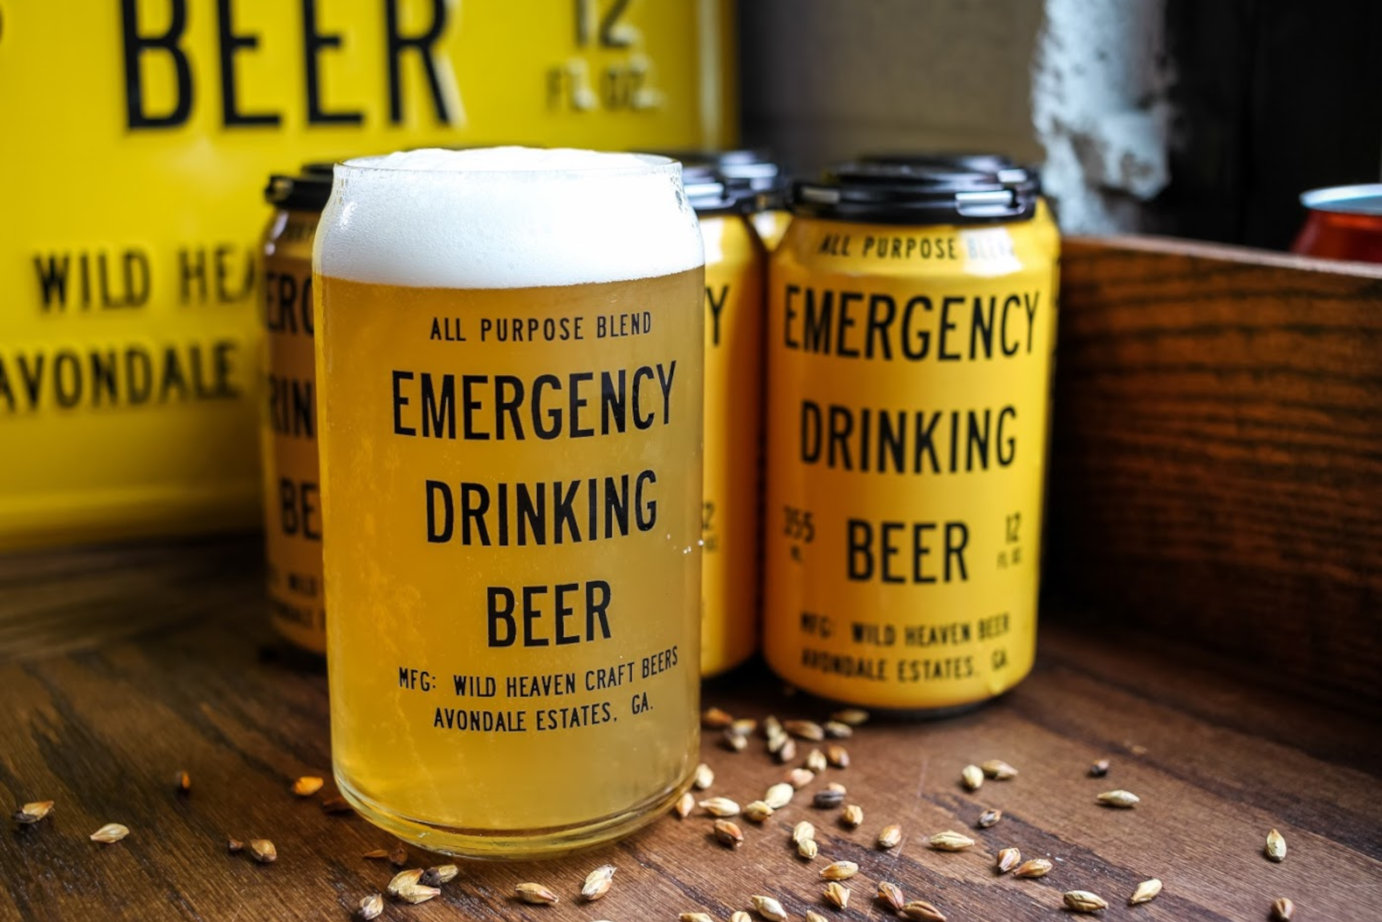 Emergency drinking beer glass and can